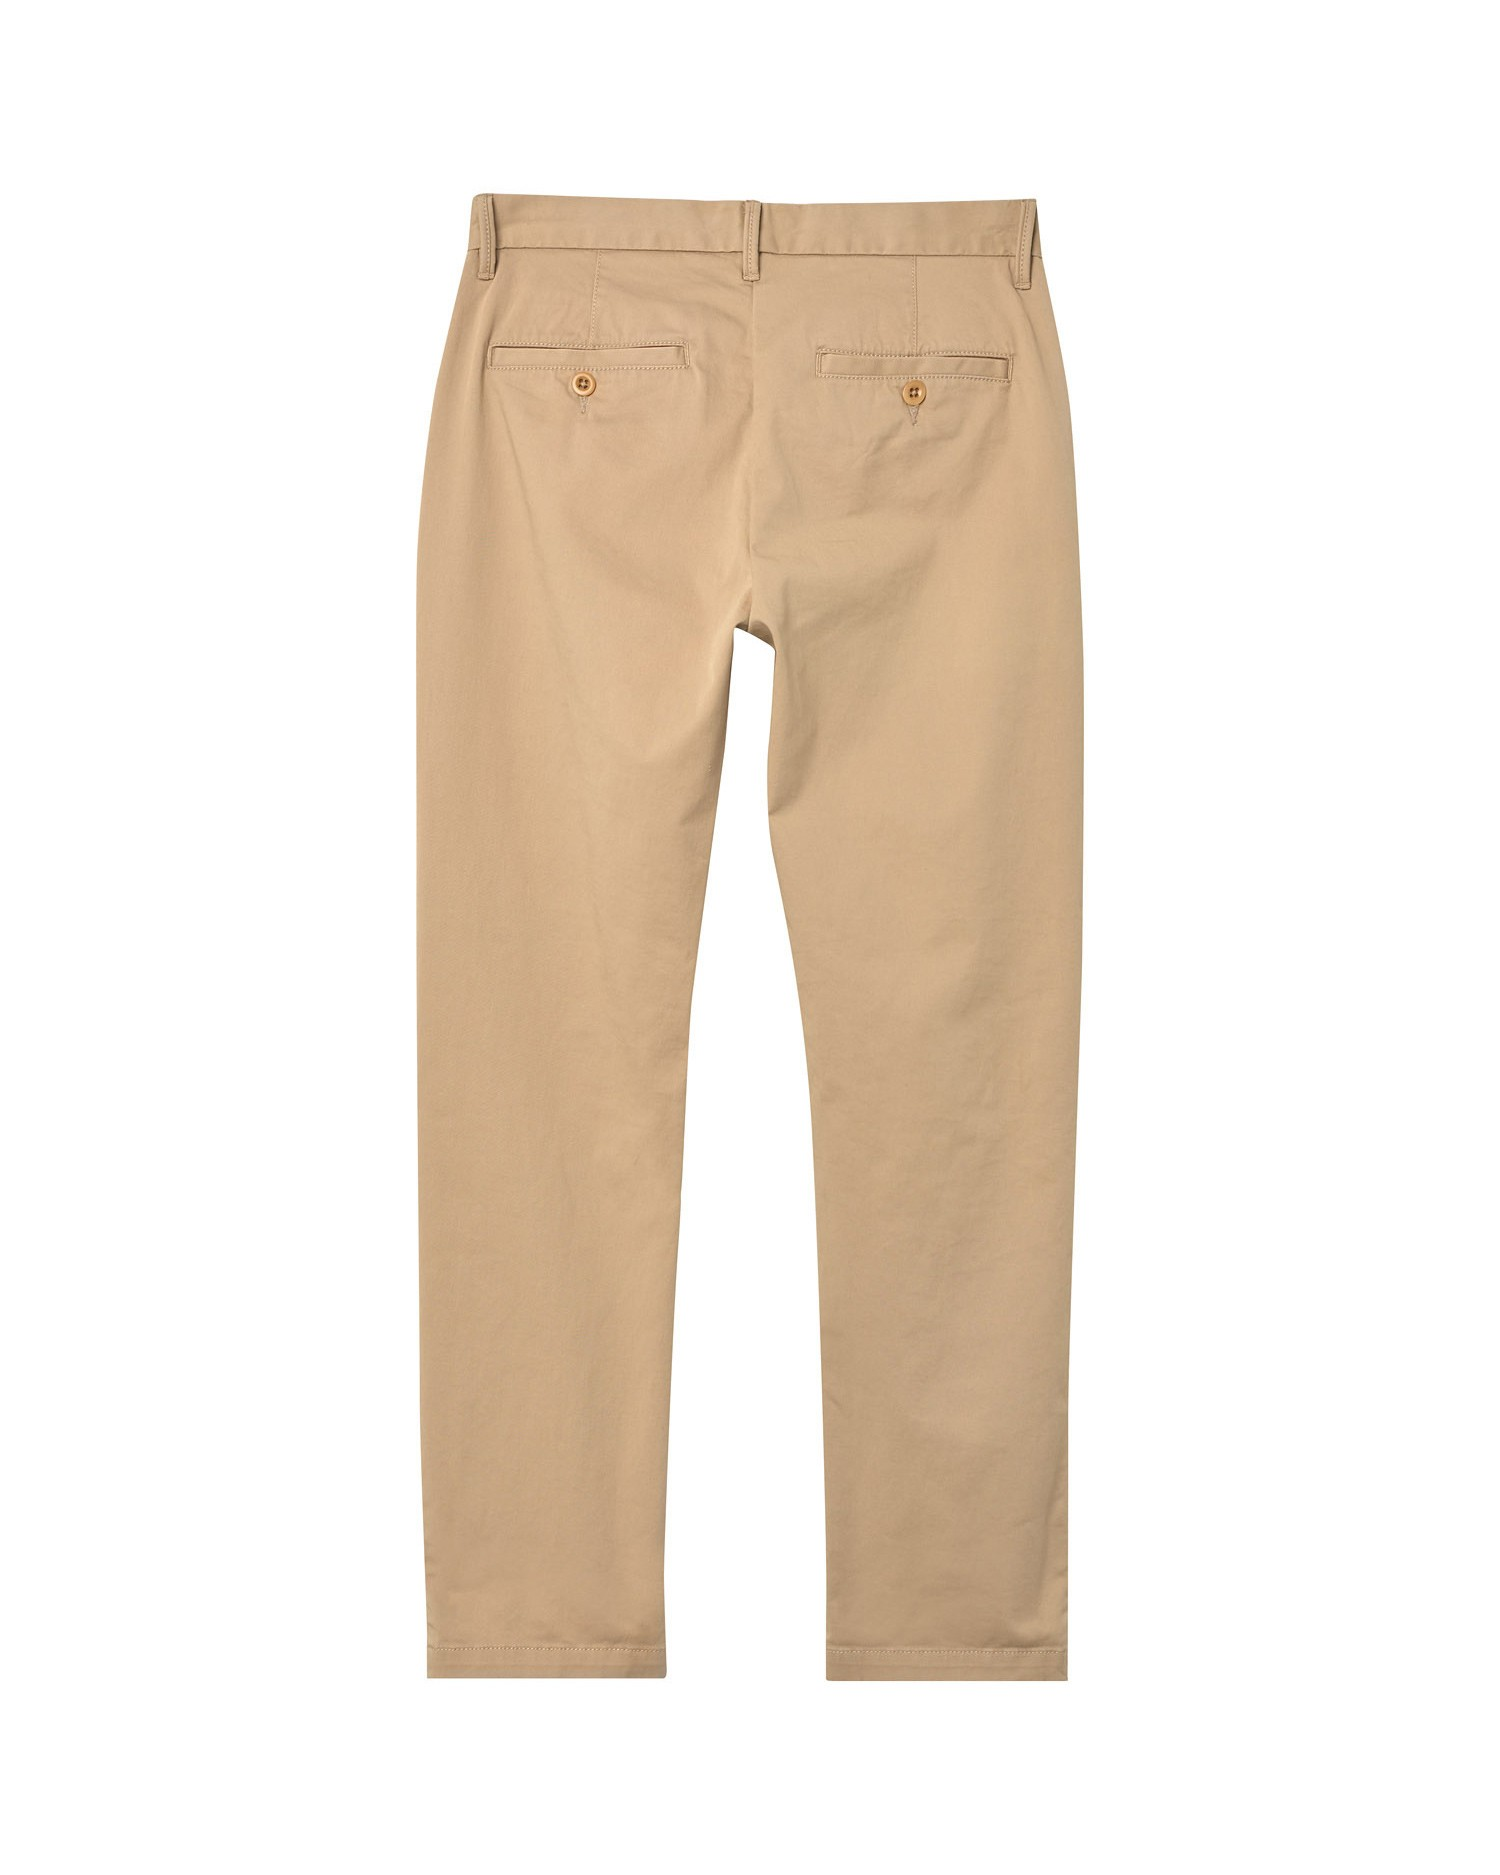 GANT Women Trousers - 4150025